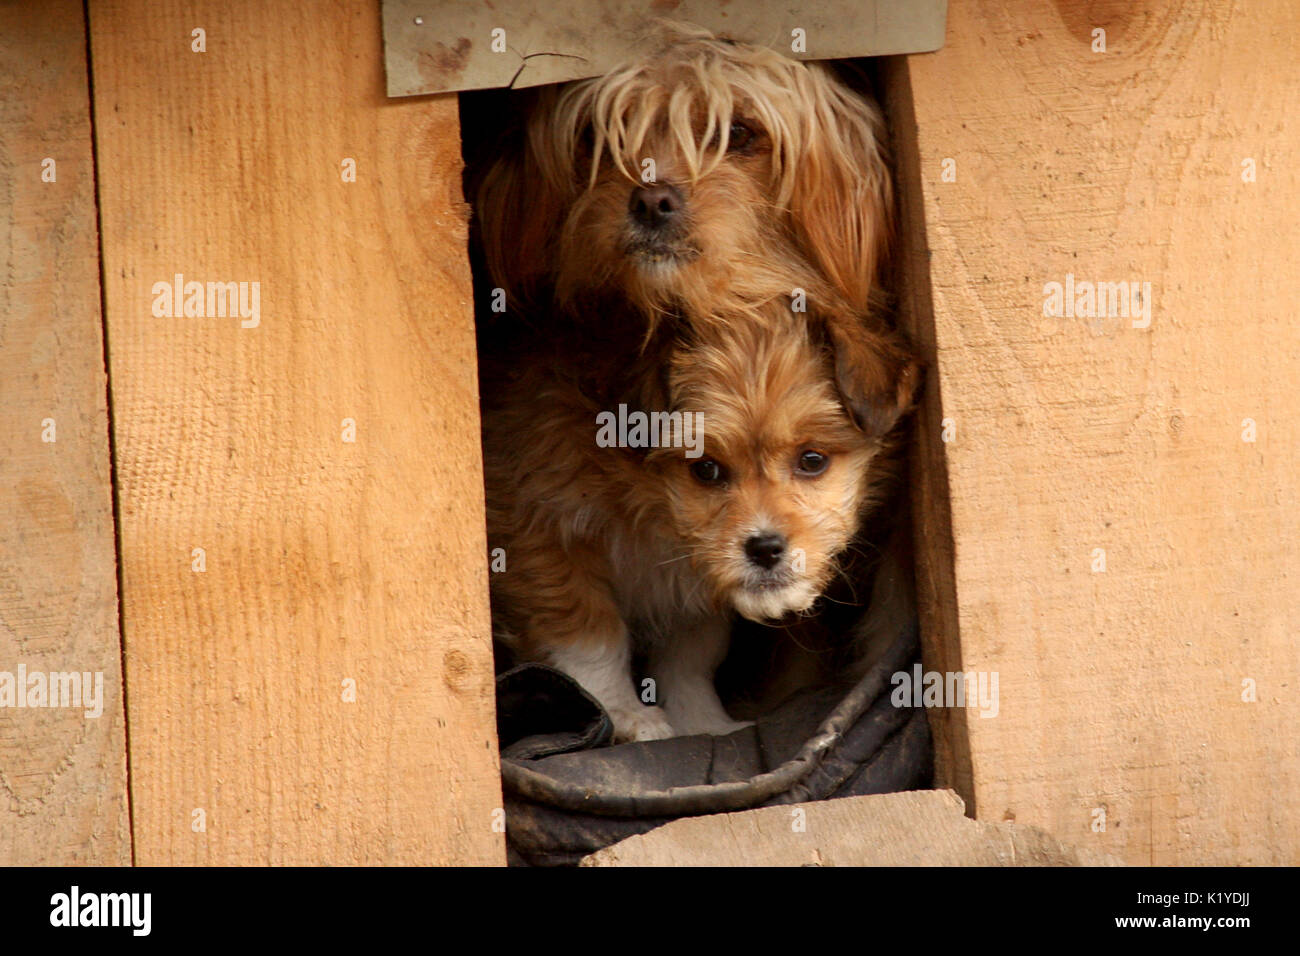 Dog Guarding House Stock Photos Amp Dog Guarding House Stock